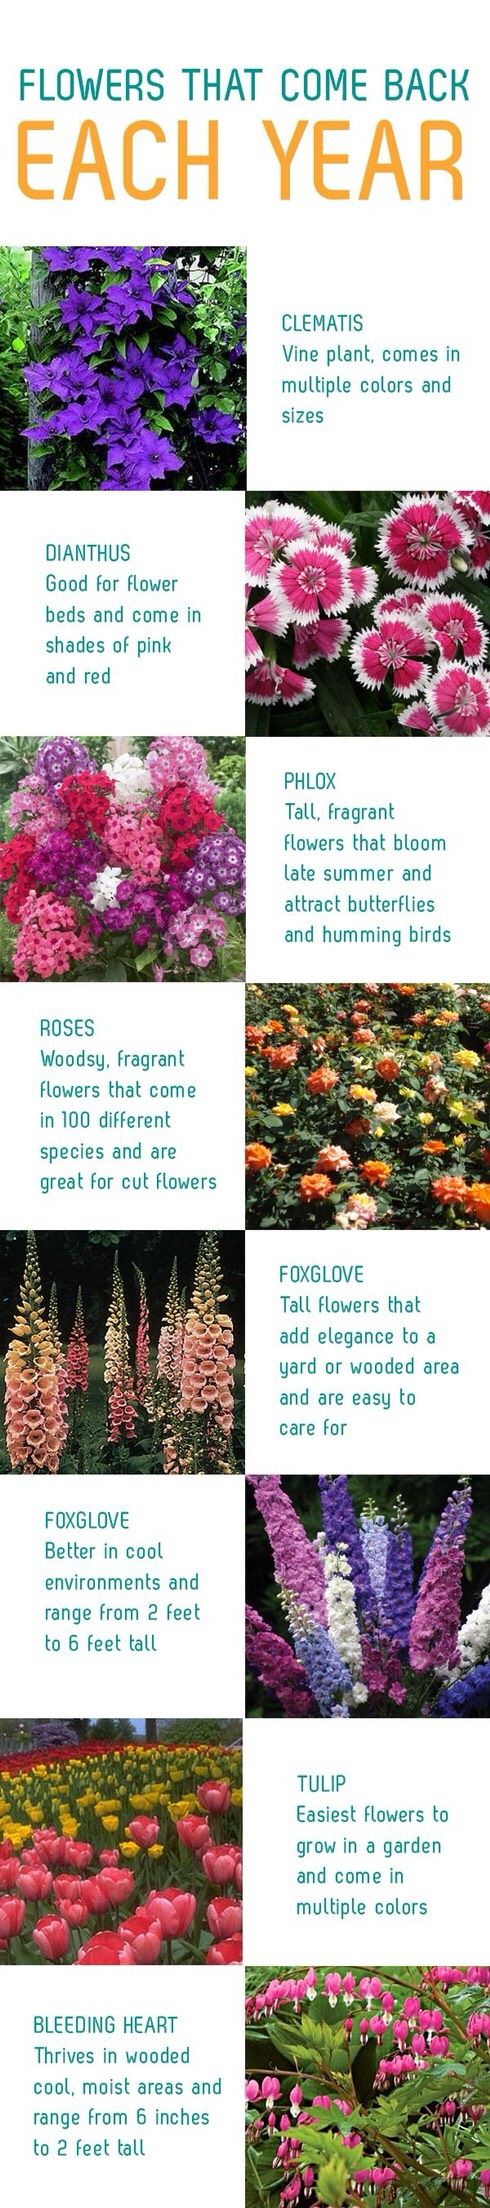 Flowers That Come Back Every Year Plants Planting Flowers Flower Beds